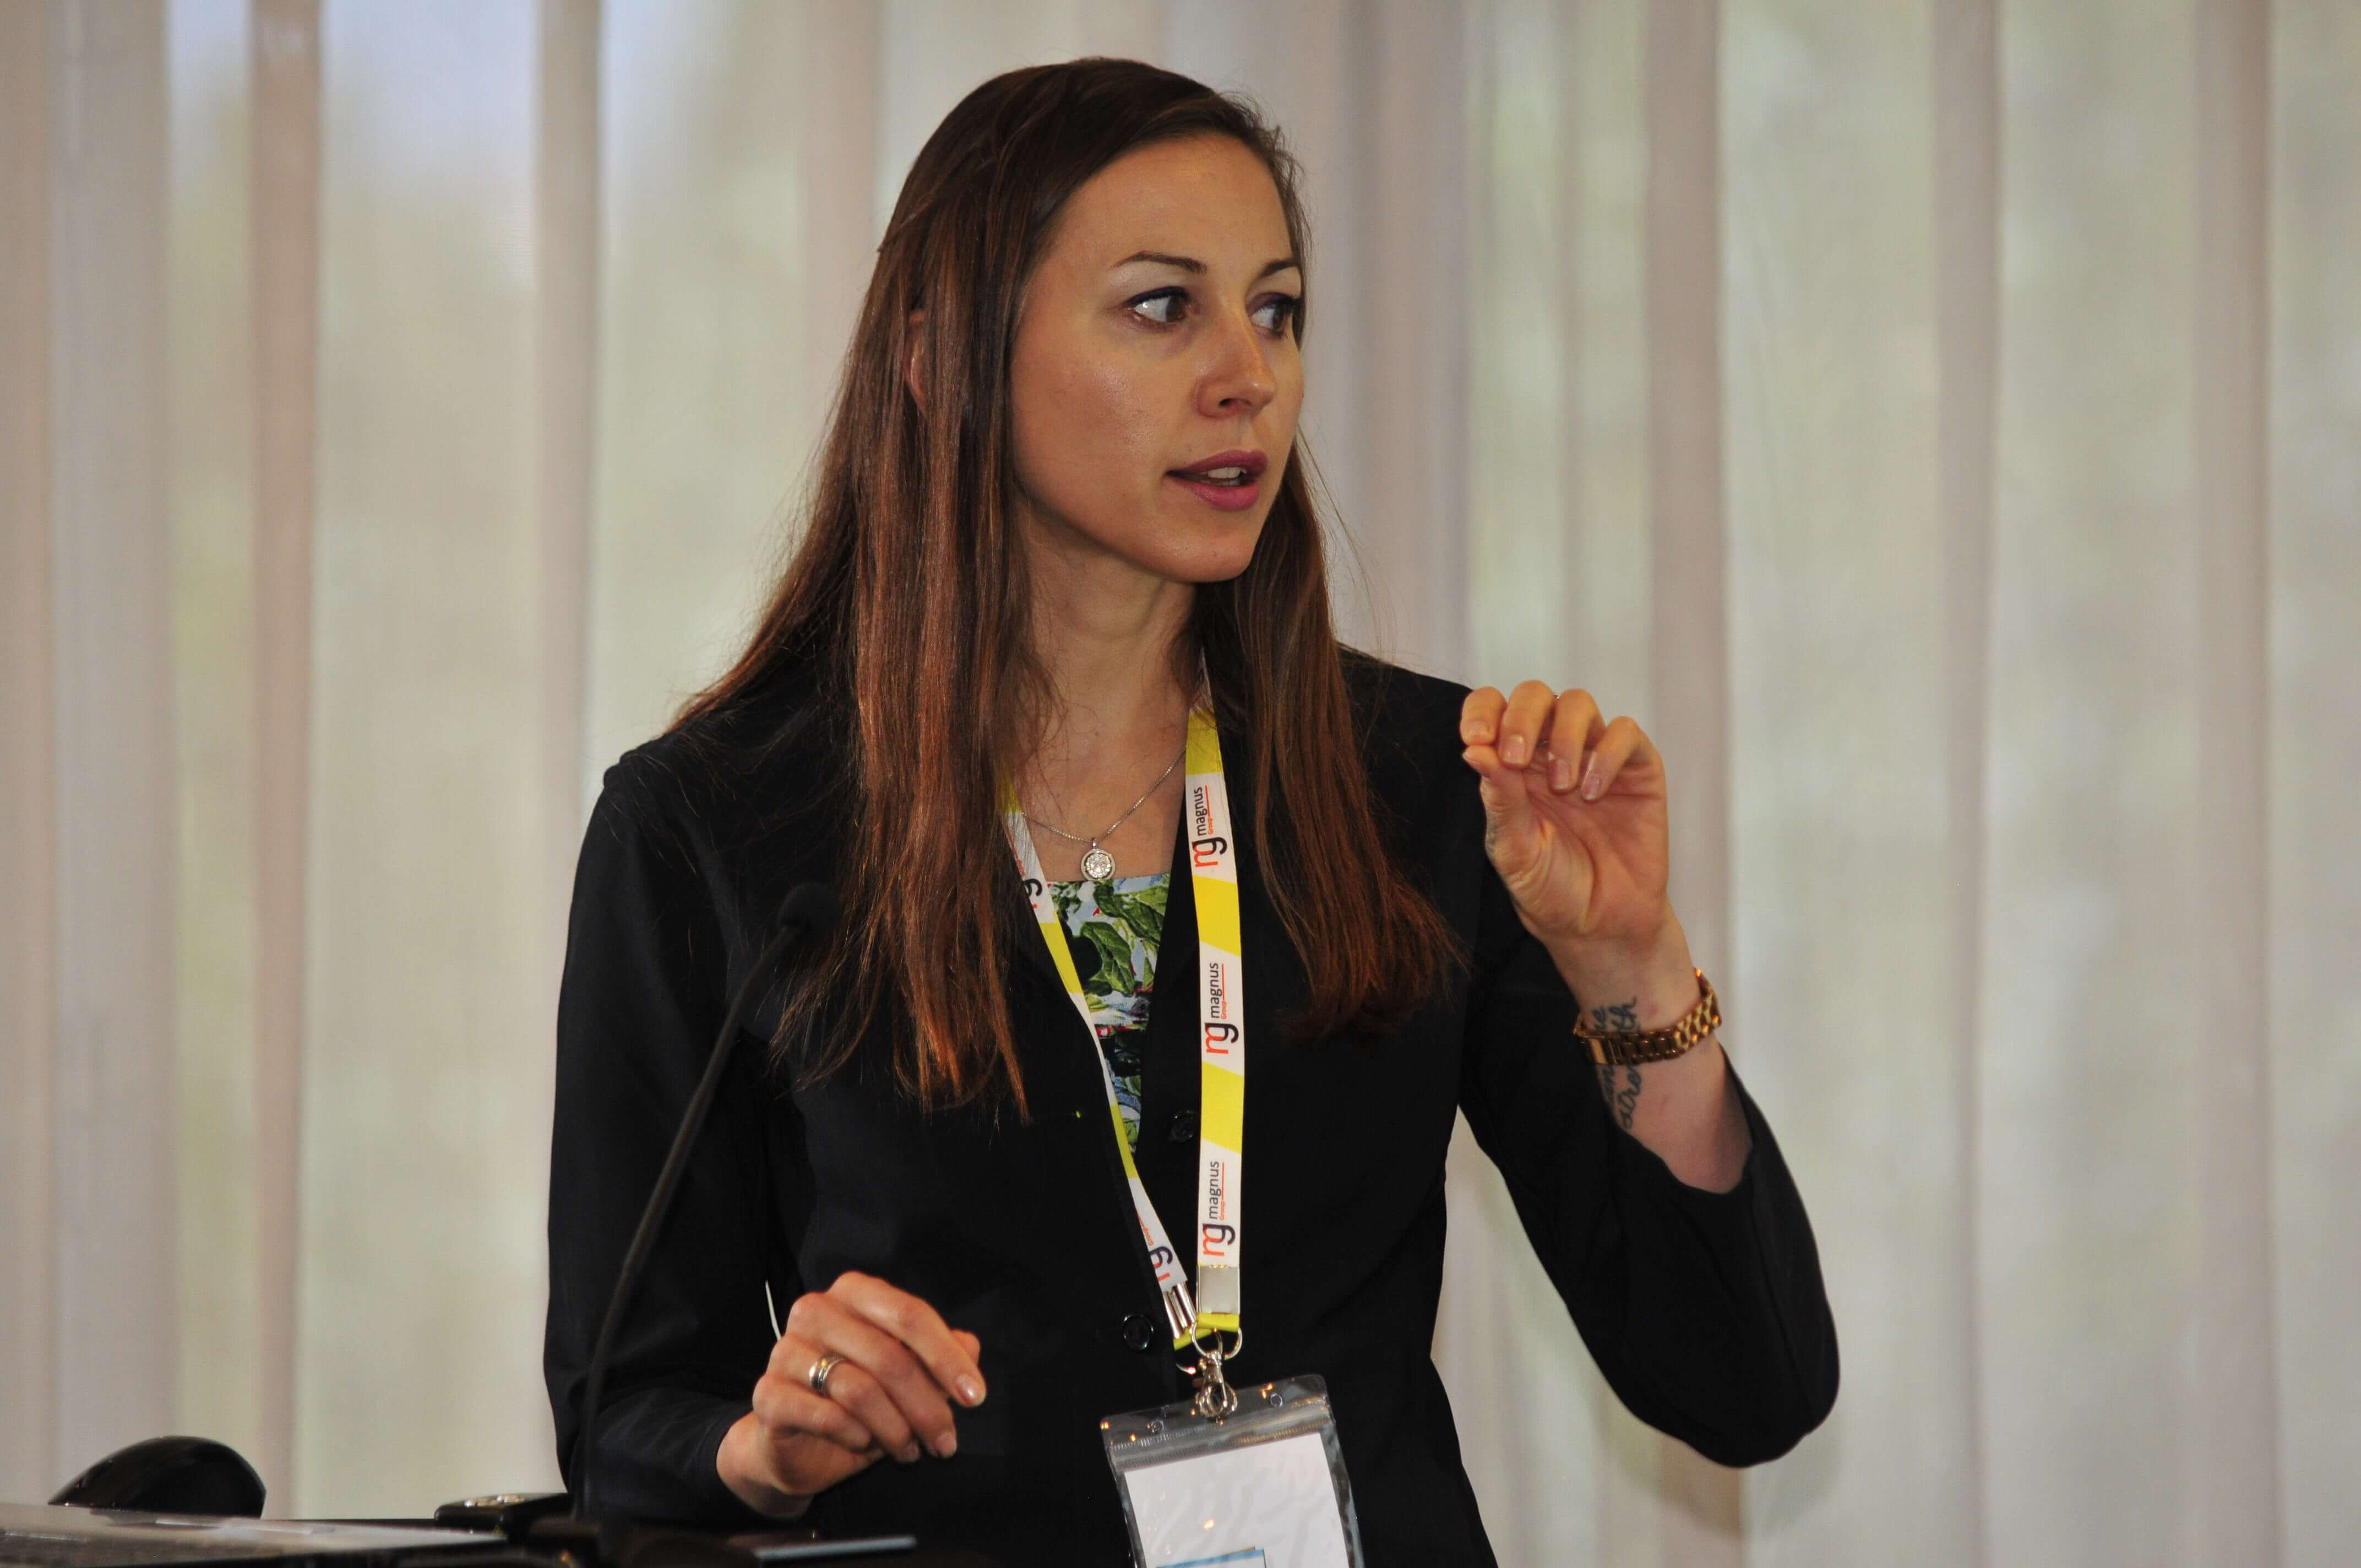 Speaker for Biotechnology conferences Europe-Kira Astakhova